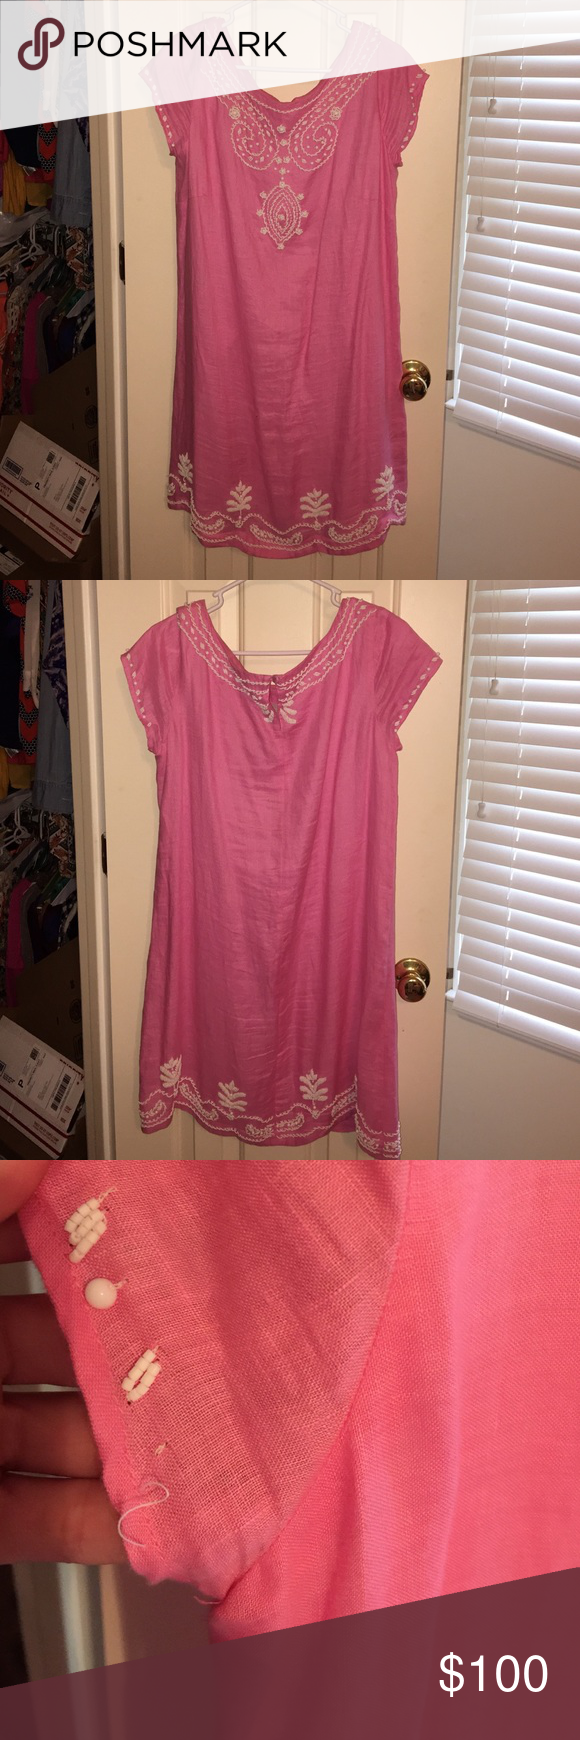 Lilly pulitzer pink beaded shift dress pink shift dress with white